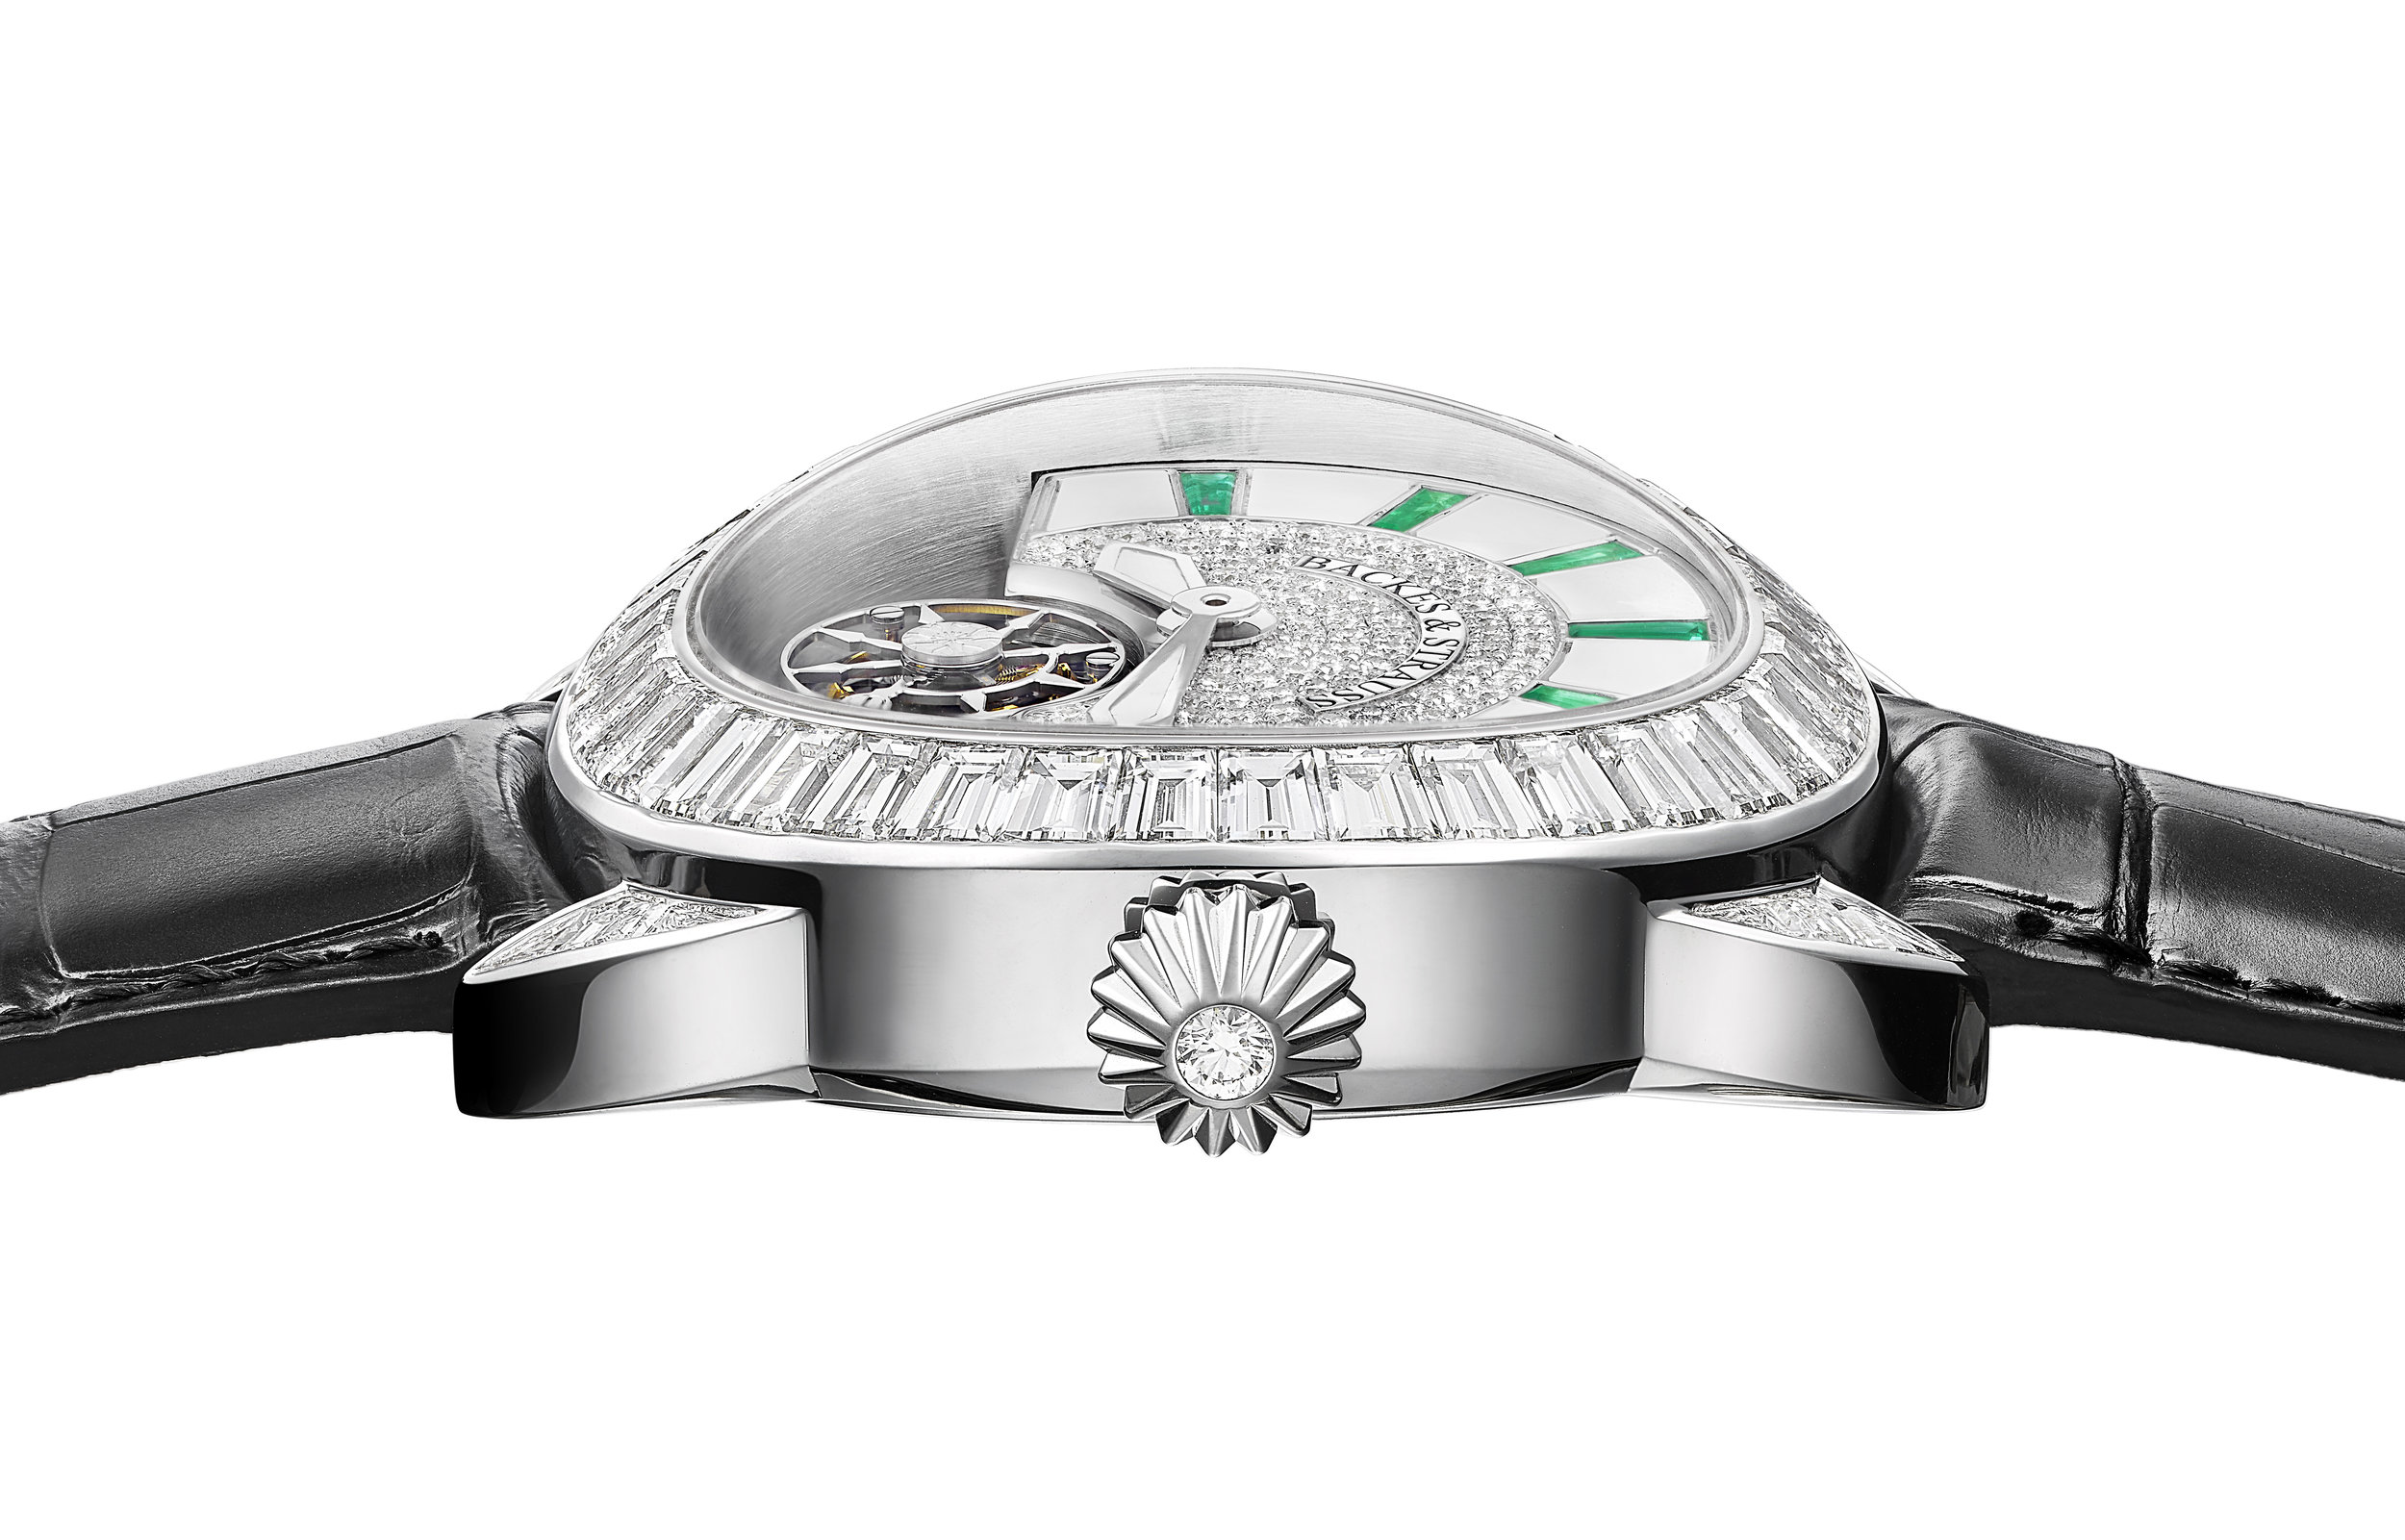 Piccadilly 45 King Tourbillon iconic diamond encrusted watch side-shot 2